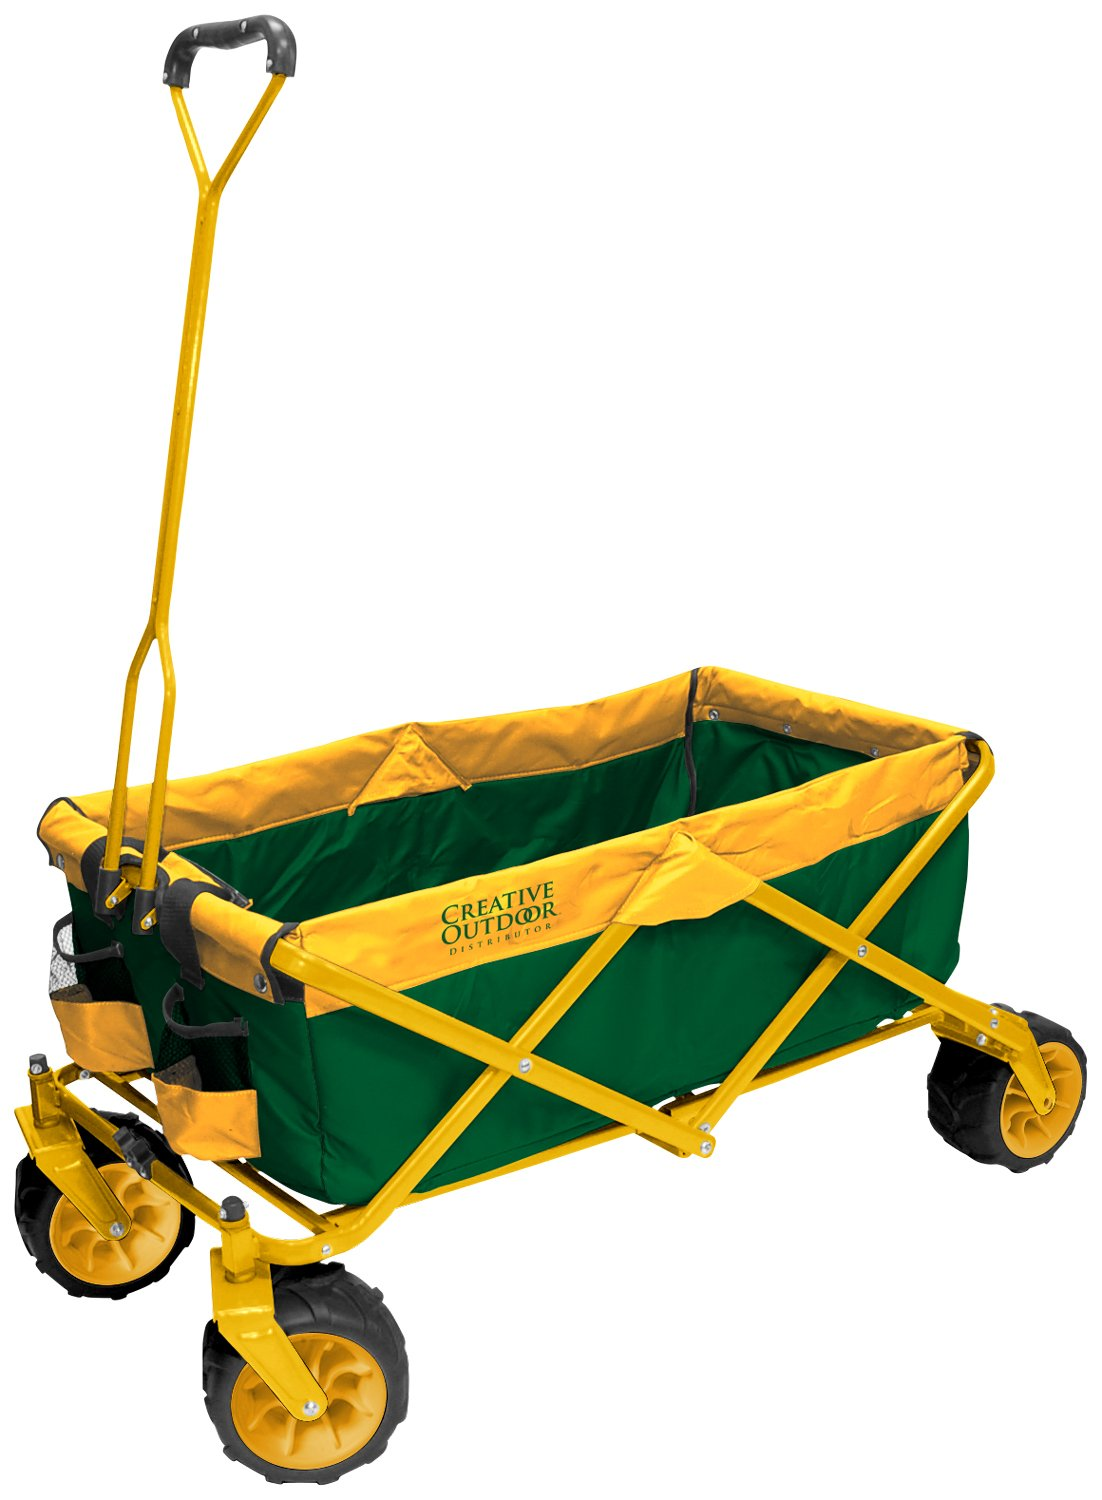 Creative Outdoor Distributor All-Terrain Folding SPORTS Team Wagon, 900555 (Green/YellowWheels) - Multipurpose Cart for Gardening, Camping, Beach Trips, and Travelling by Creative Outdoor Distributor